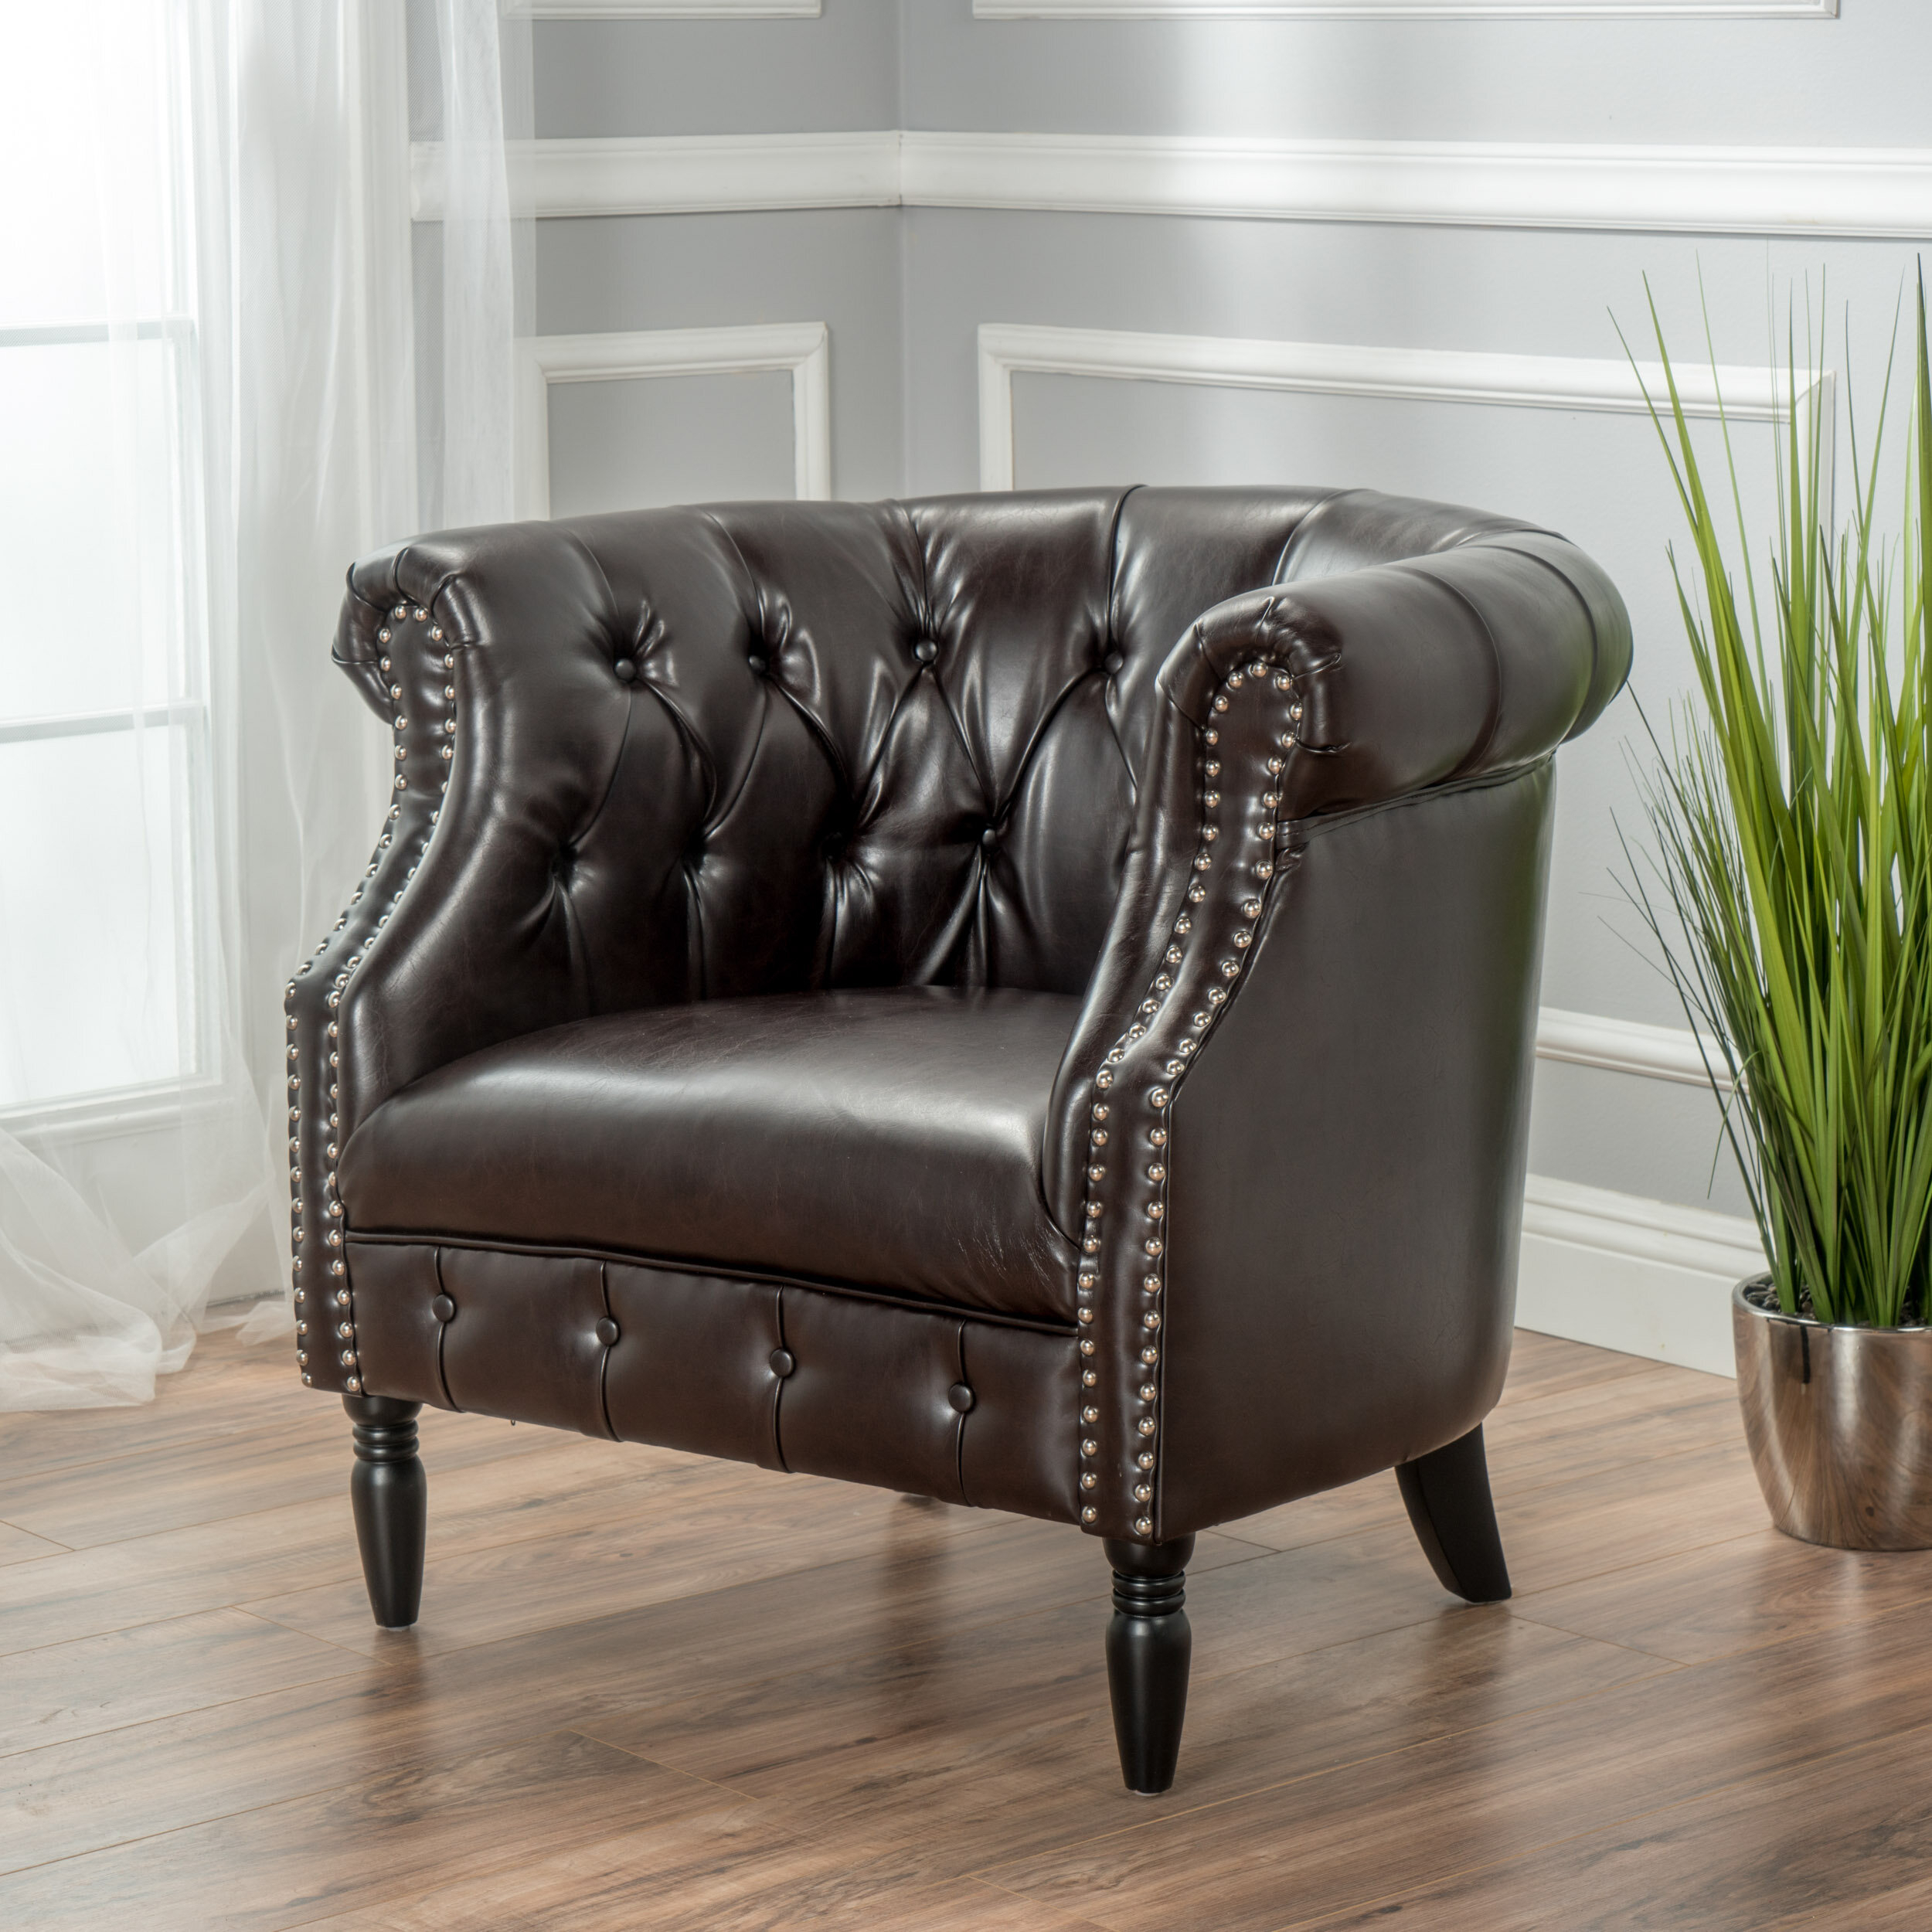 Chesterfield Accent Chairs You'Ll Love In 2021 | Wayfair With Kjellfrid Chesterfield Chairs (Photo 7 of 15)